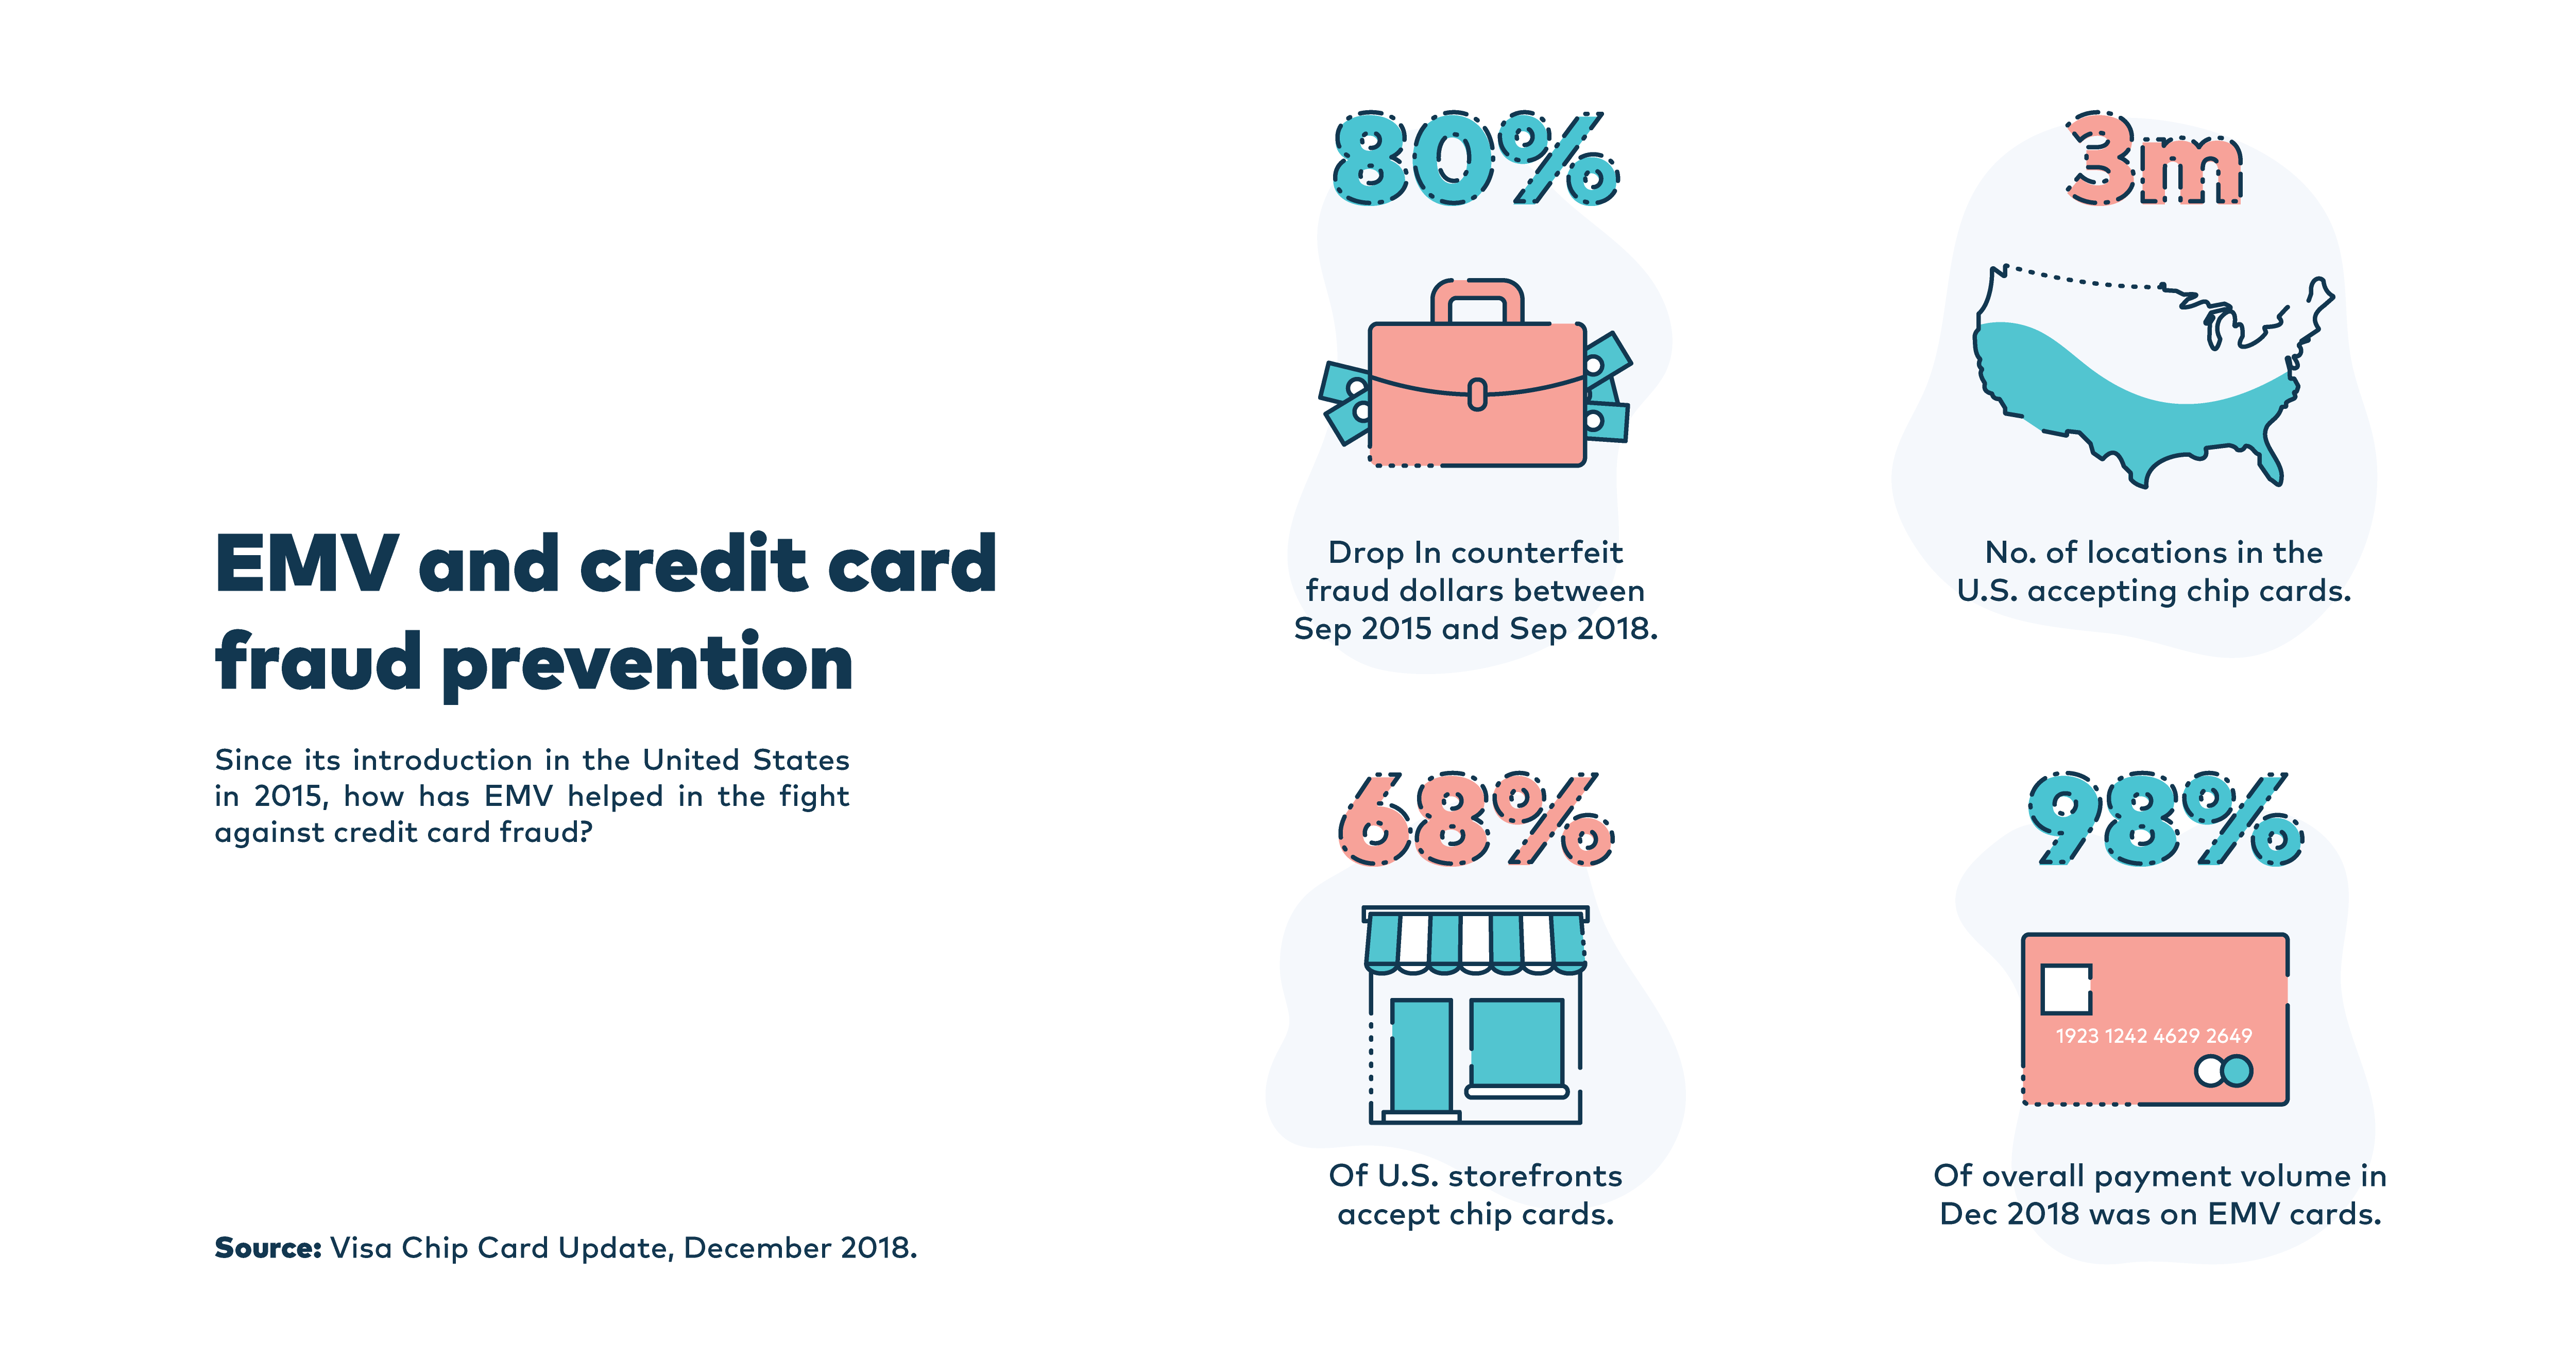 Everything you need to know about EMV (Europay, MasterCard, Visa) - Illustration showing data for EMV and credit card fraud prevention